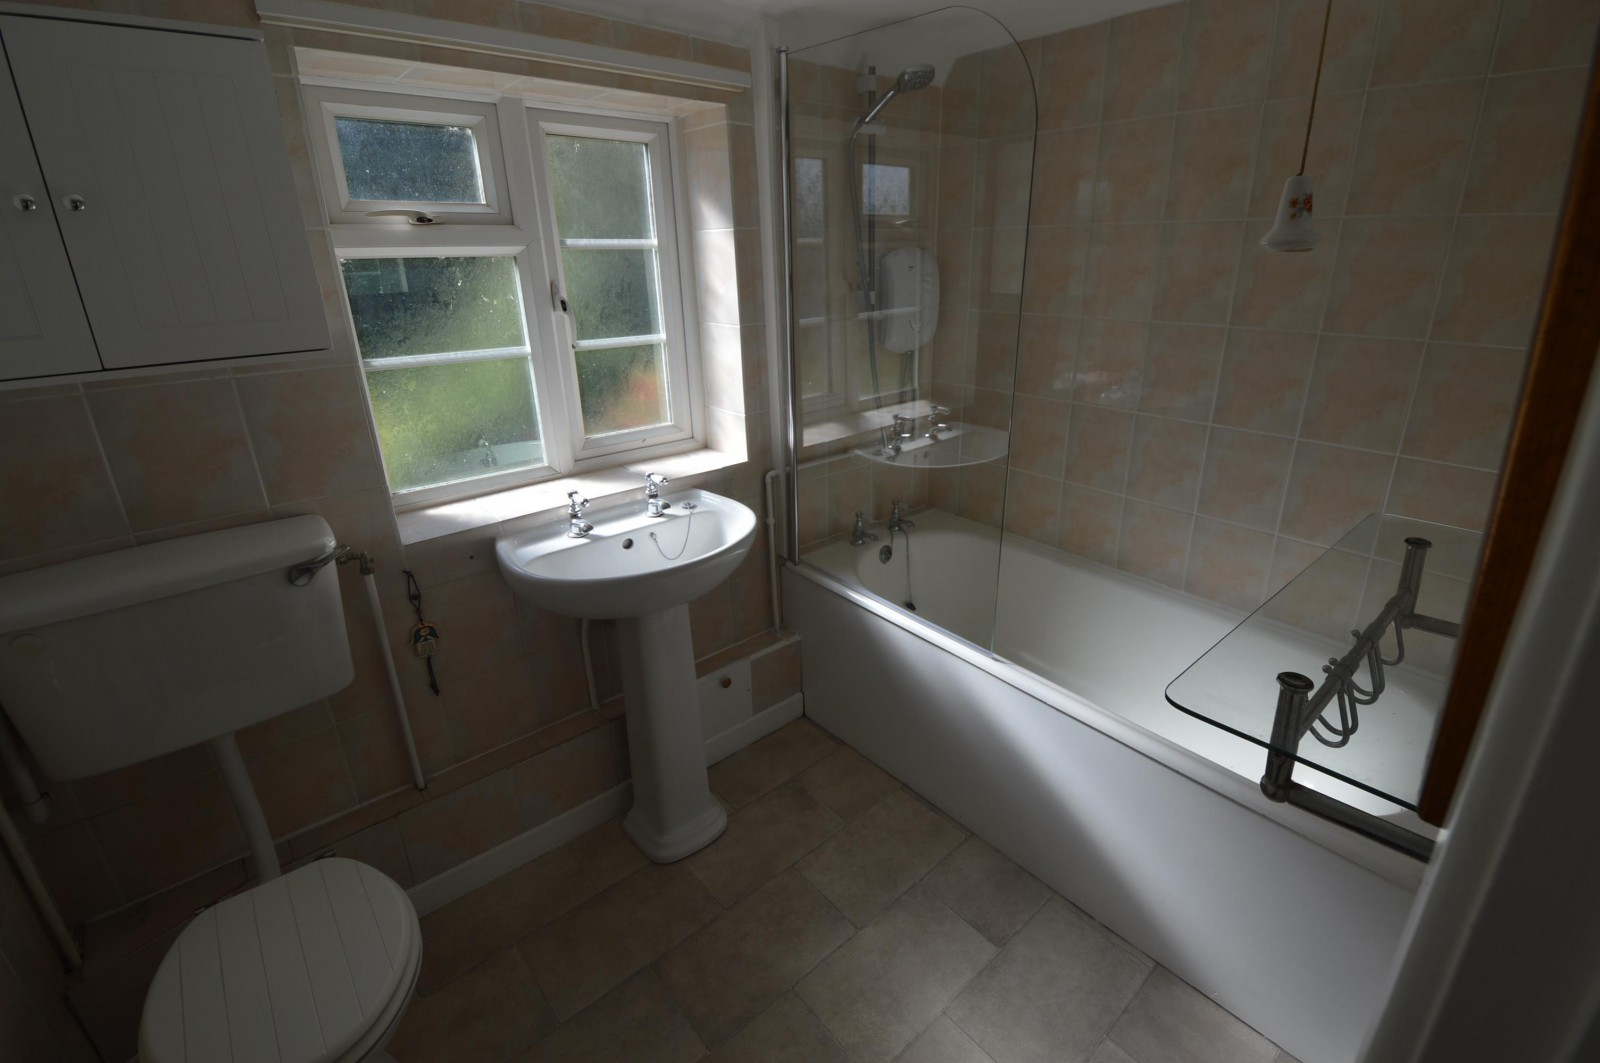 Bathroom Property to let in West Meon